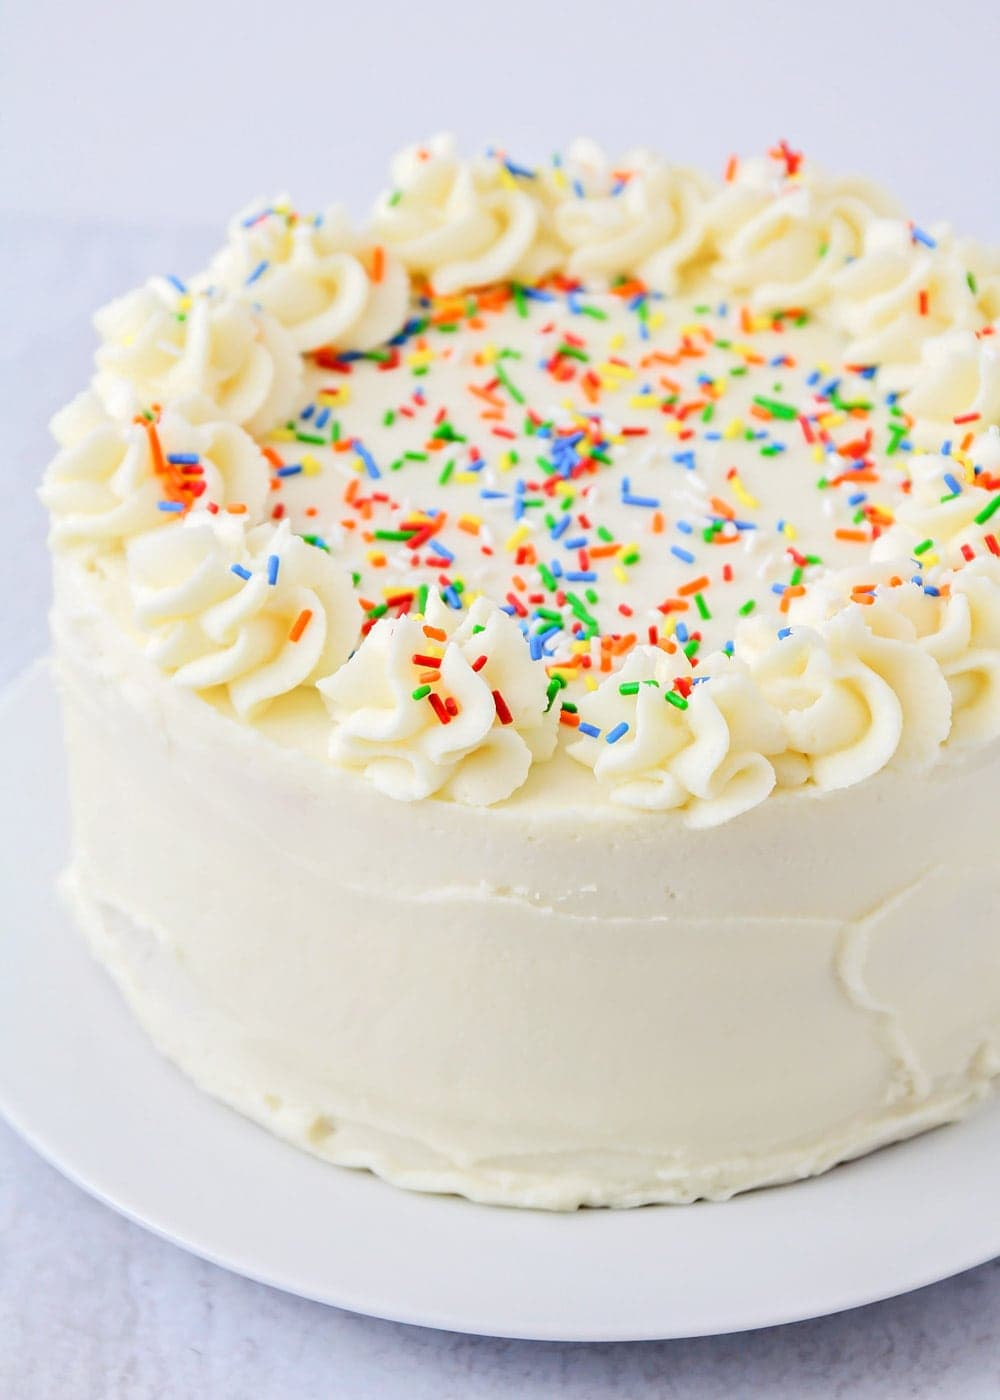 Close up of homemade vanilla frosting on a cake